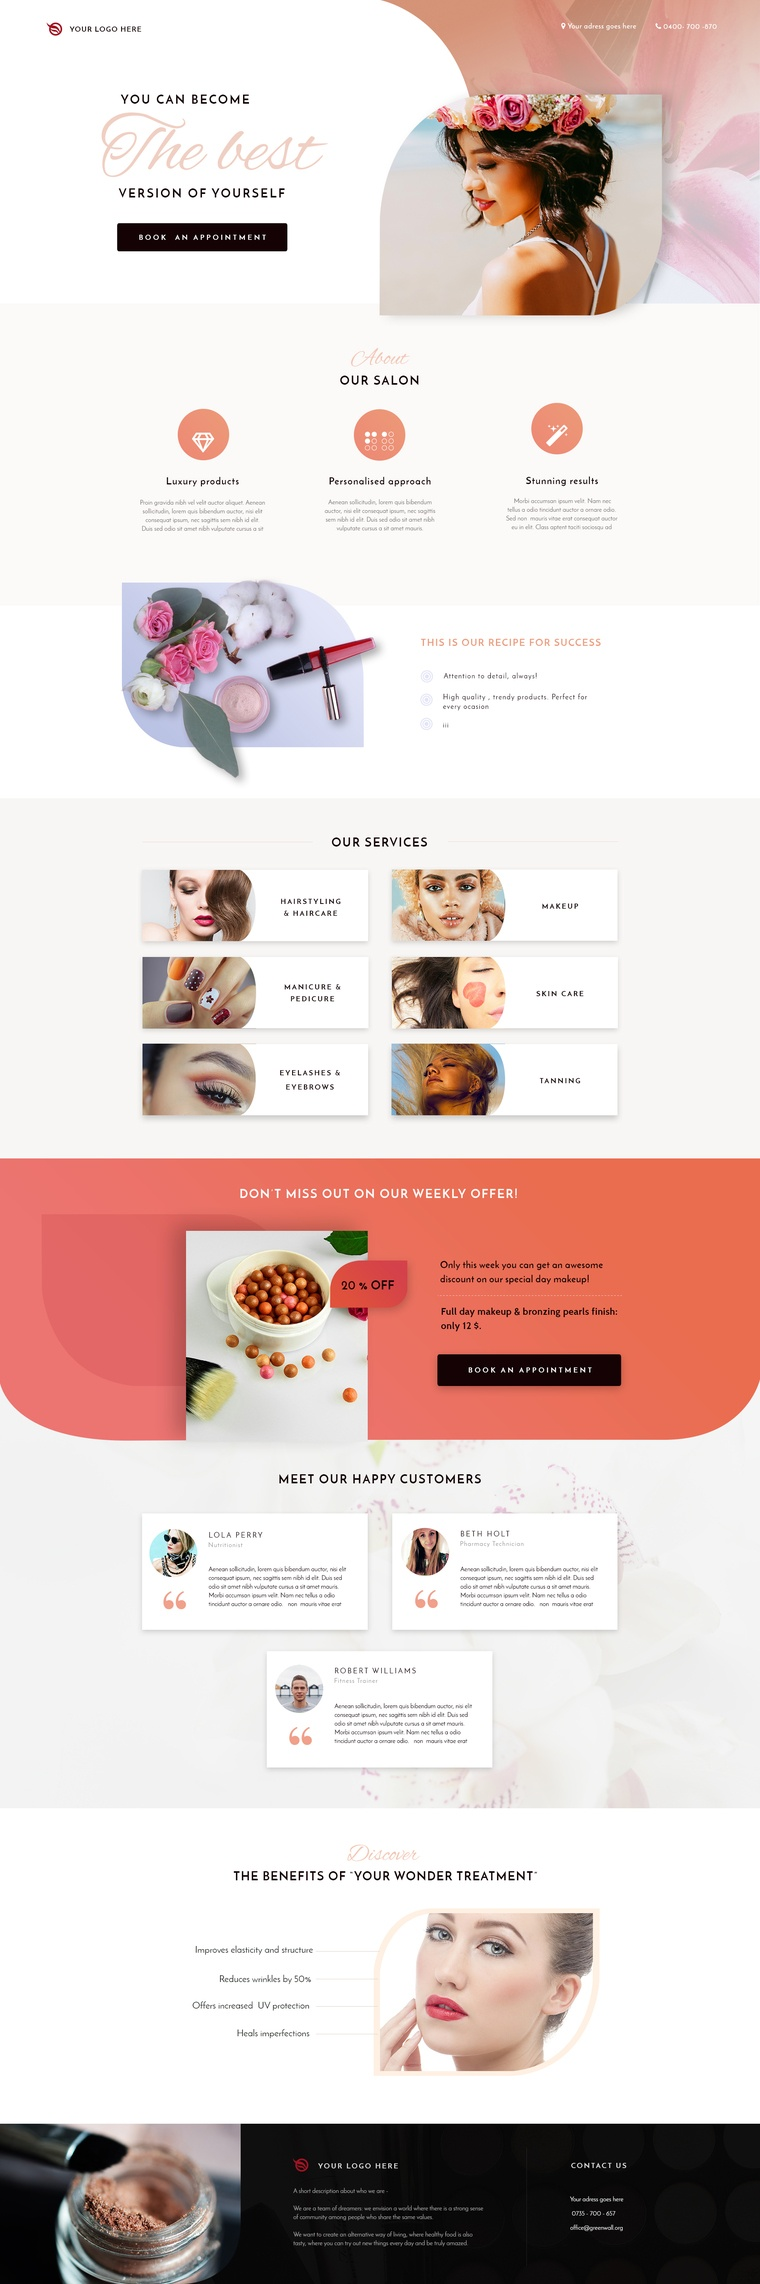 3 new local business landing page templates variation 3 the jewelry shop landing page flashek Image collections